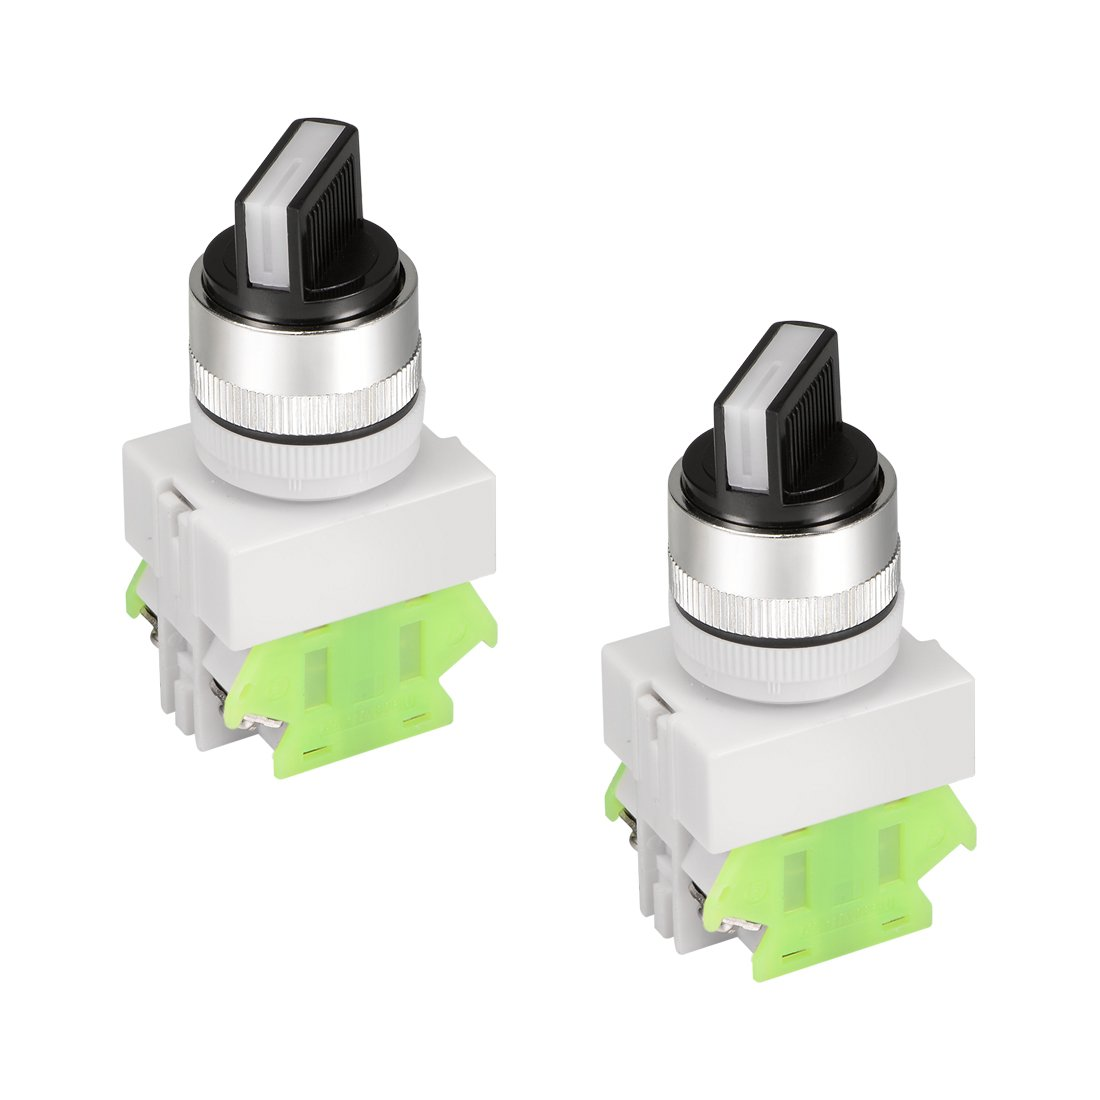 uxcell 2pcs Latching Lock 3 Positions Rotary Selector Select Switch DPST 10A 24mm Mounting Hole Dia